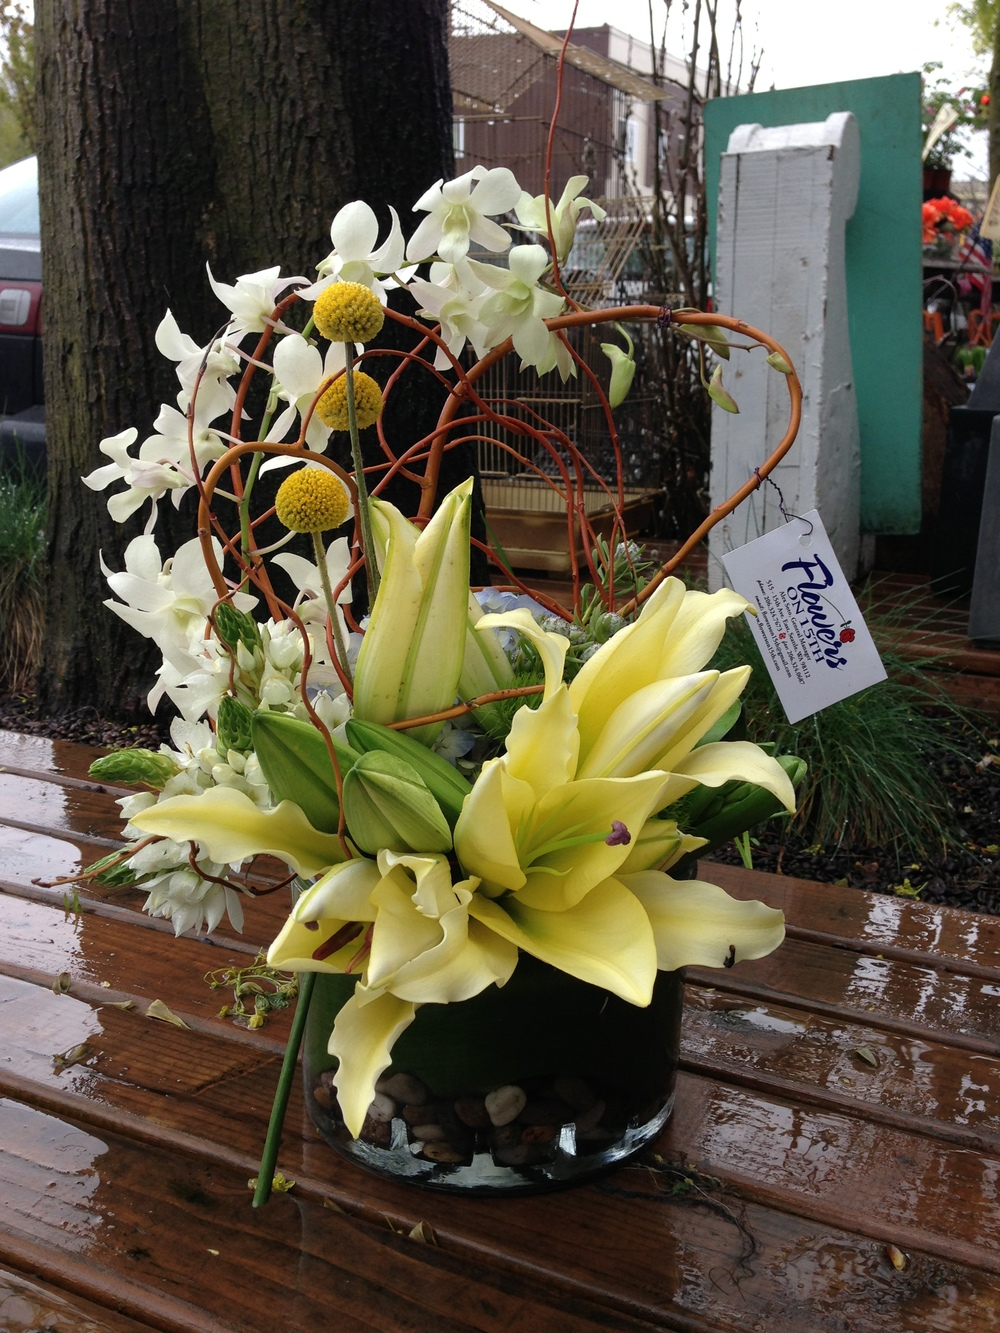 Sympathy flowers flowers on 15th flowers on 15th 2013 04 19 132631g izmirmasajfo